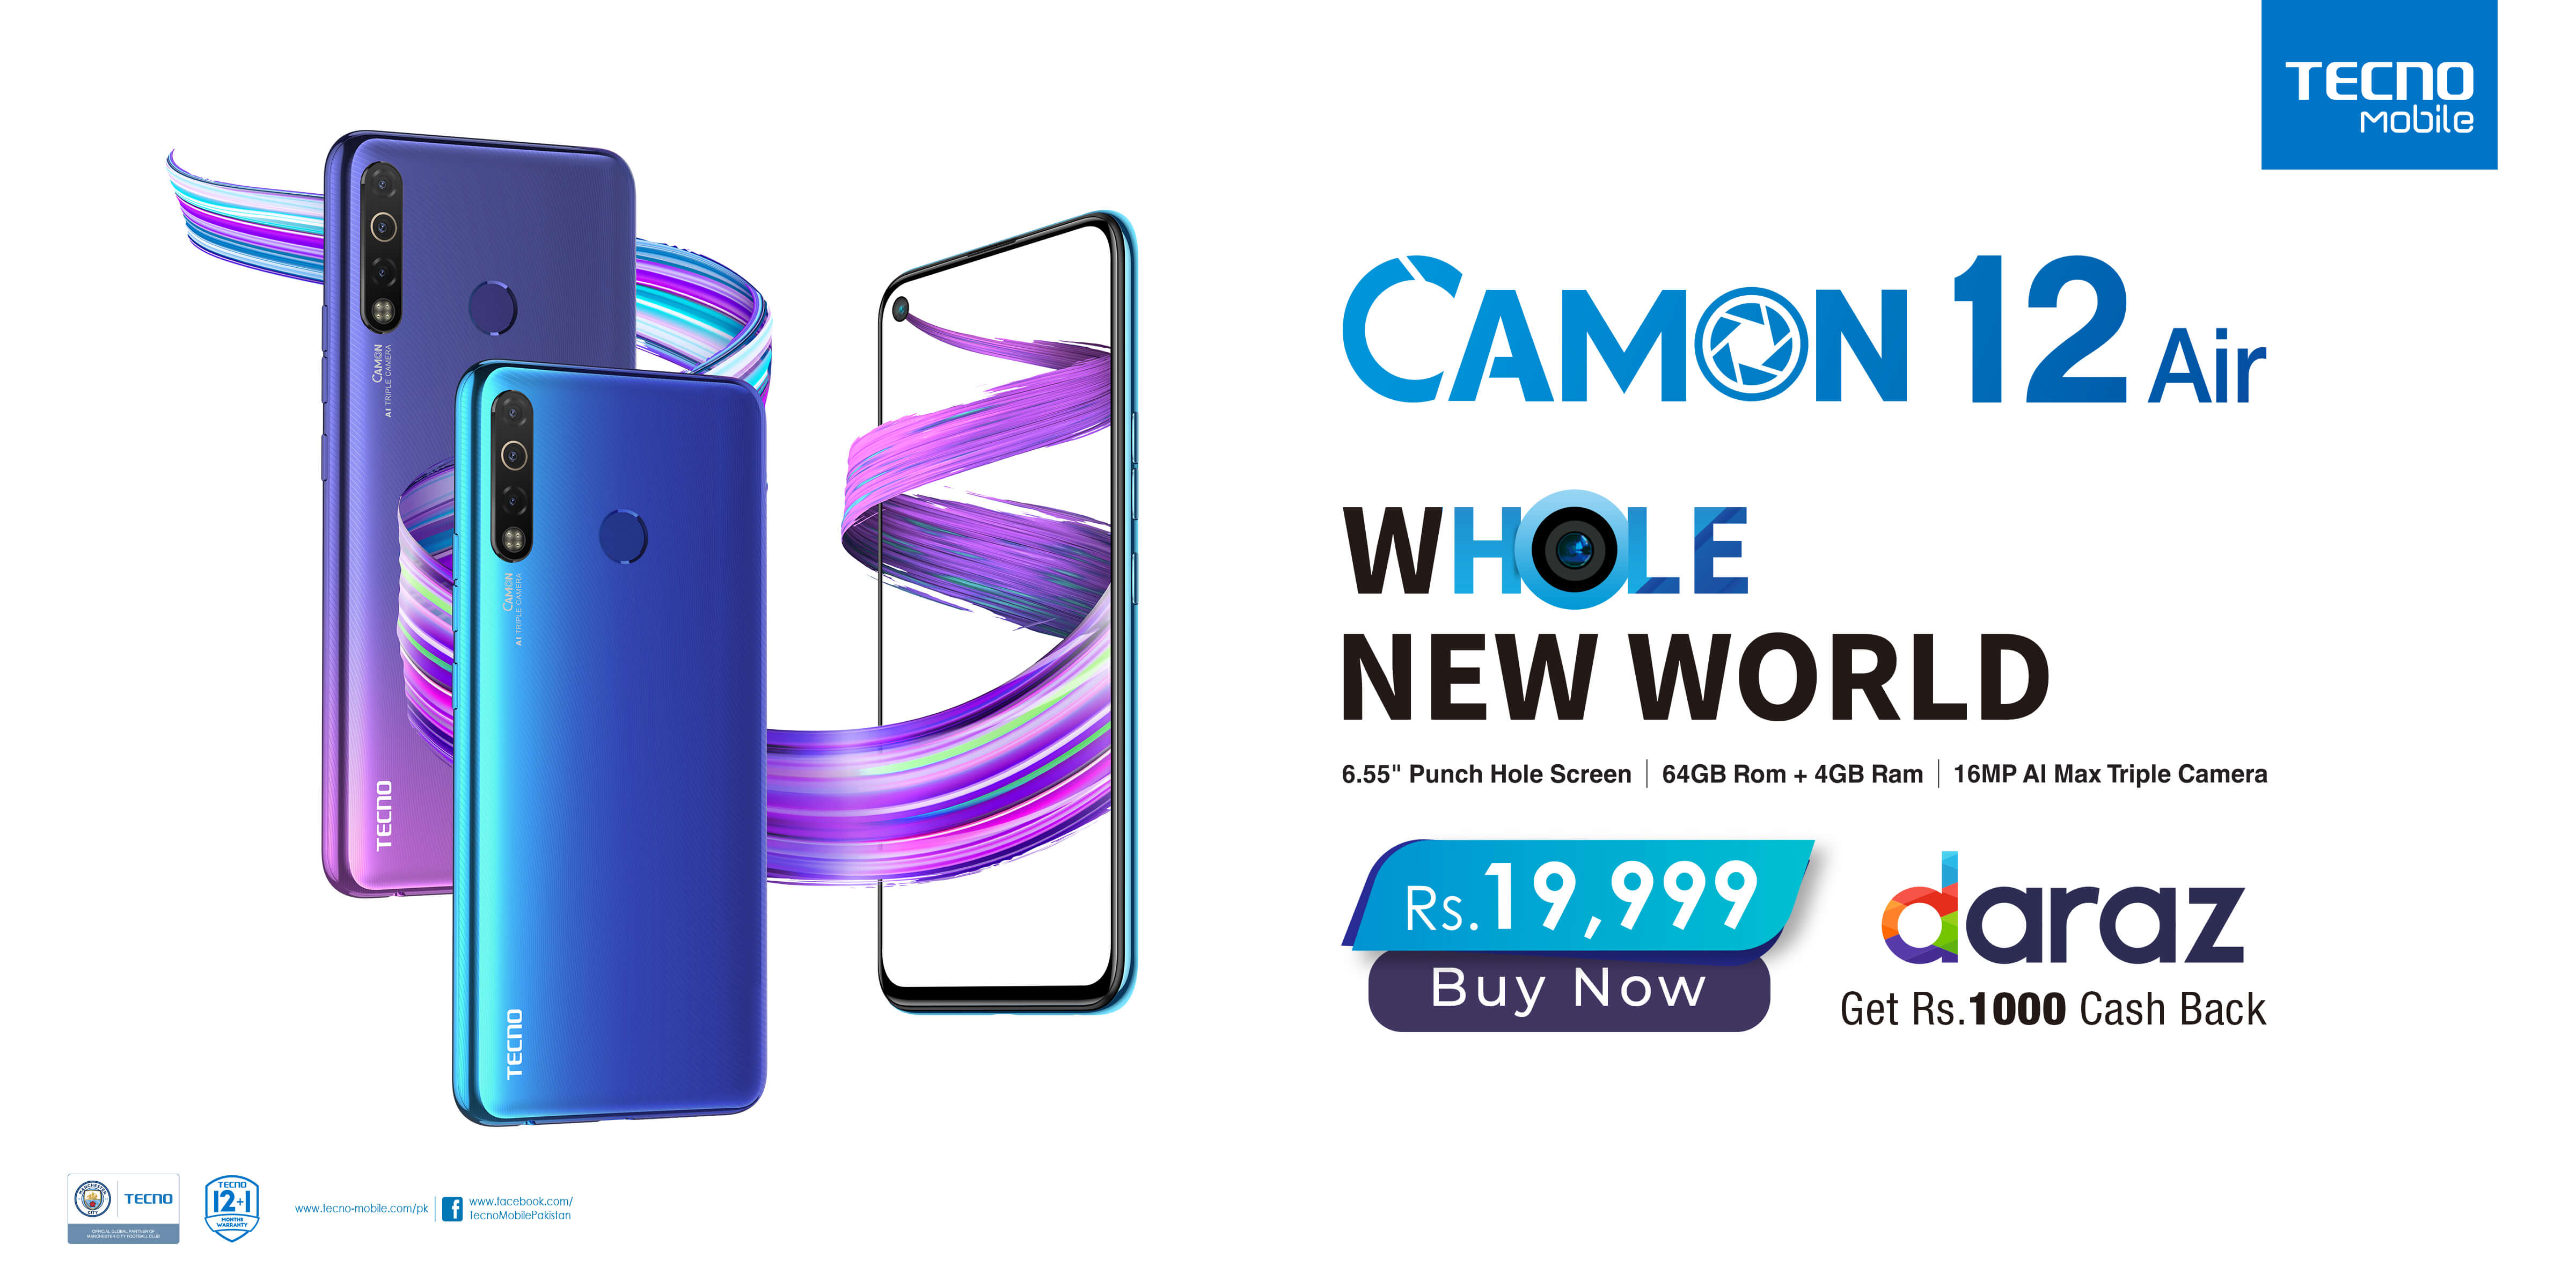 TECNO Launches CAMON 12 Air Exclusively On Daraz